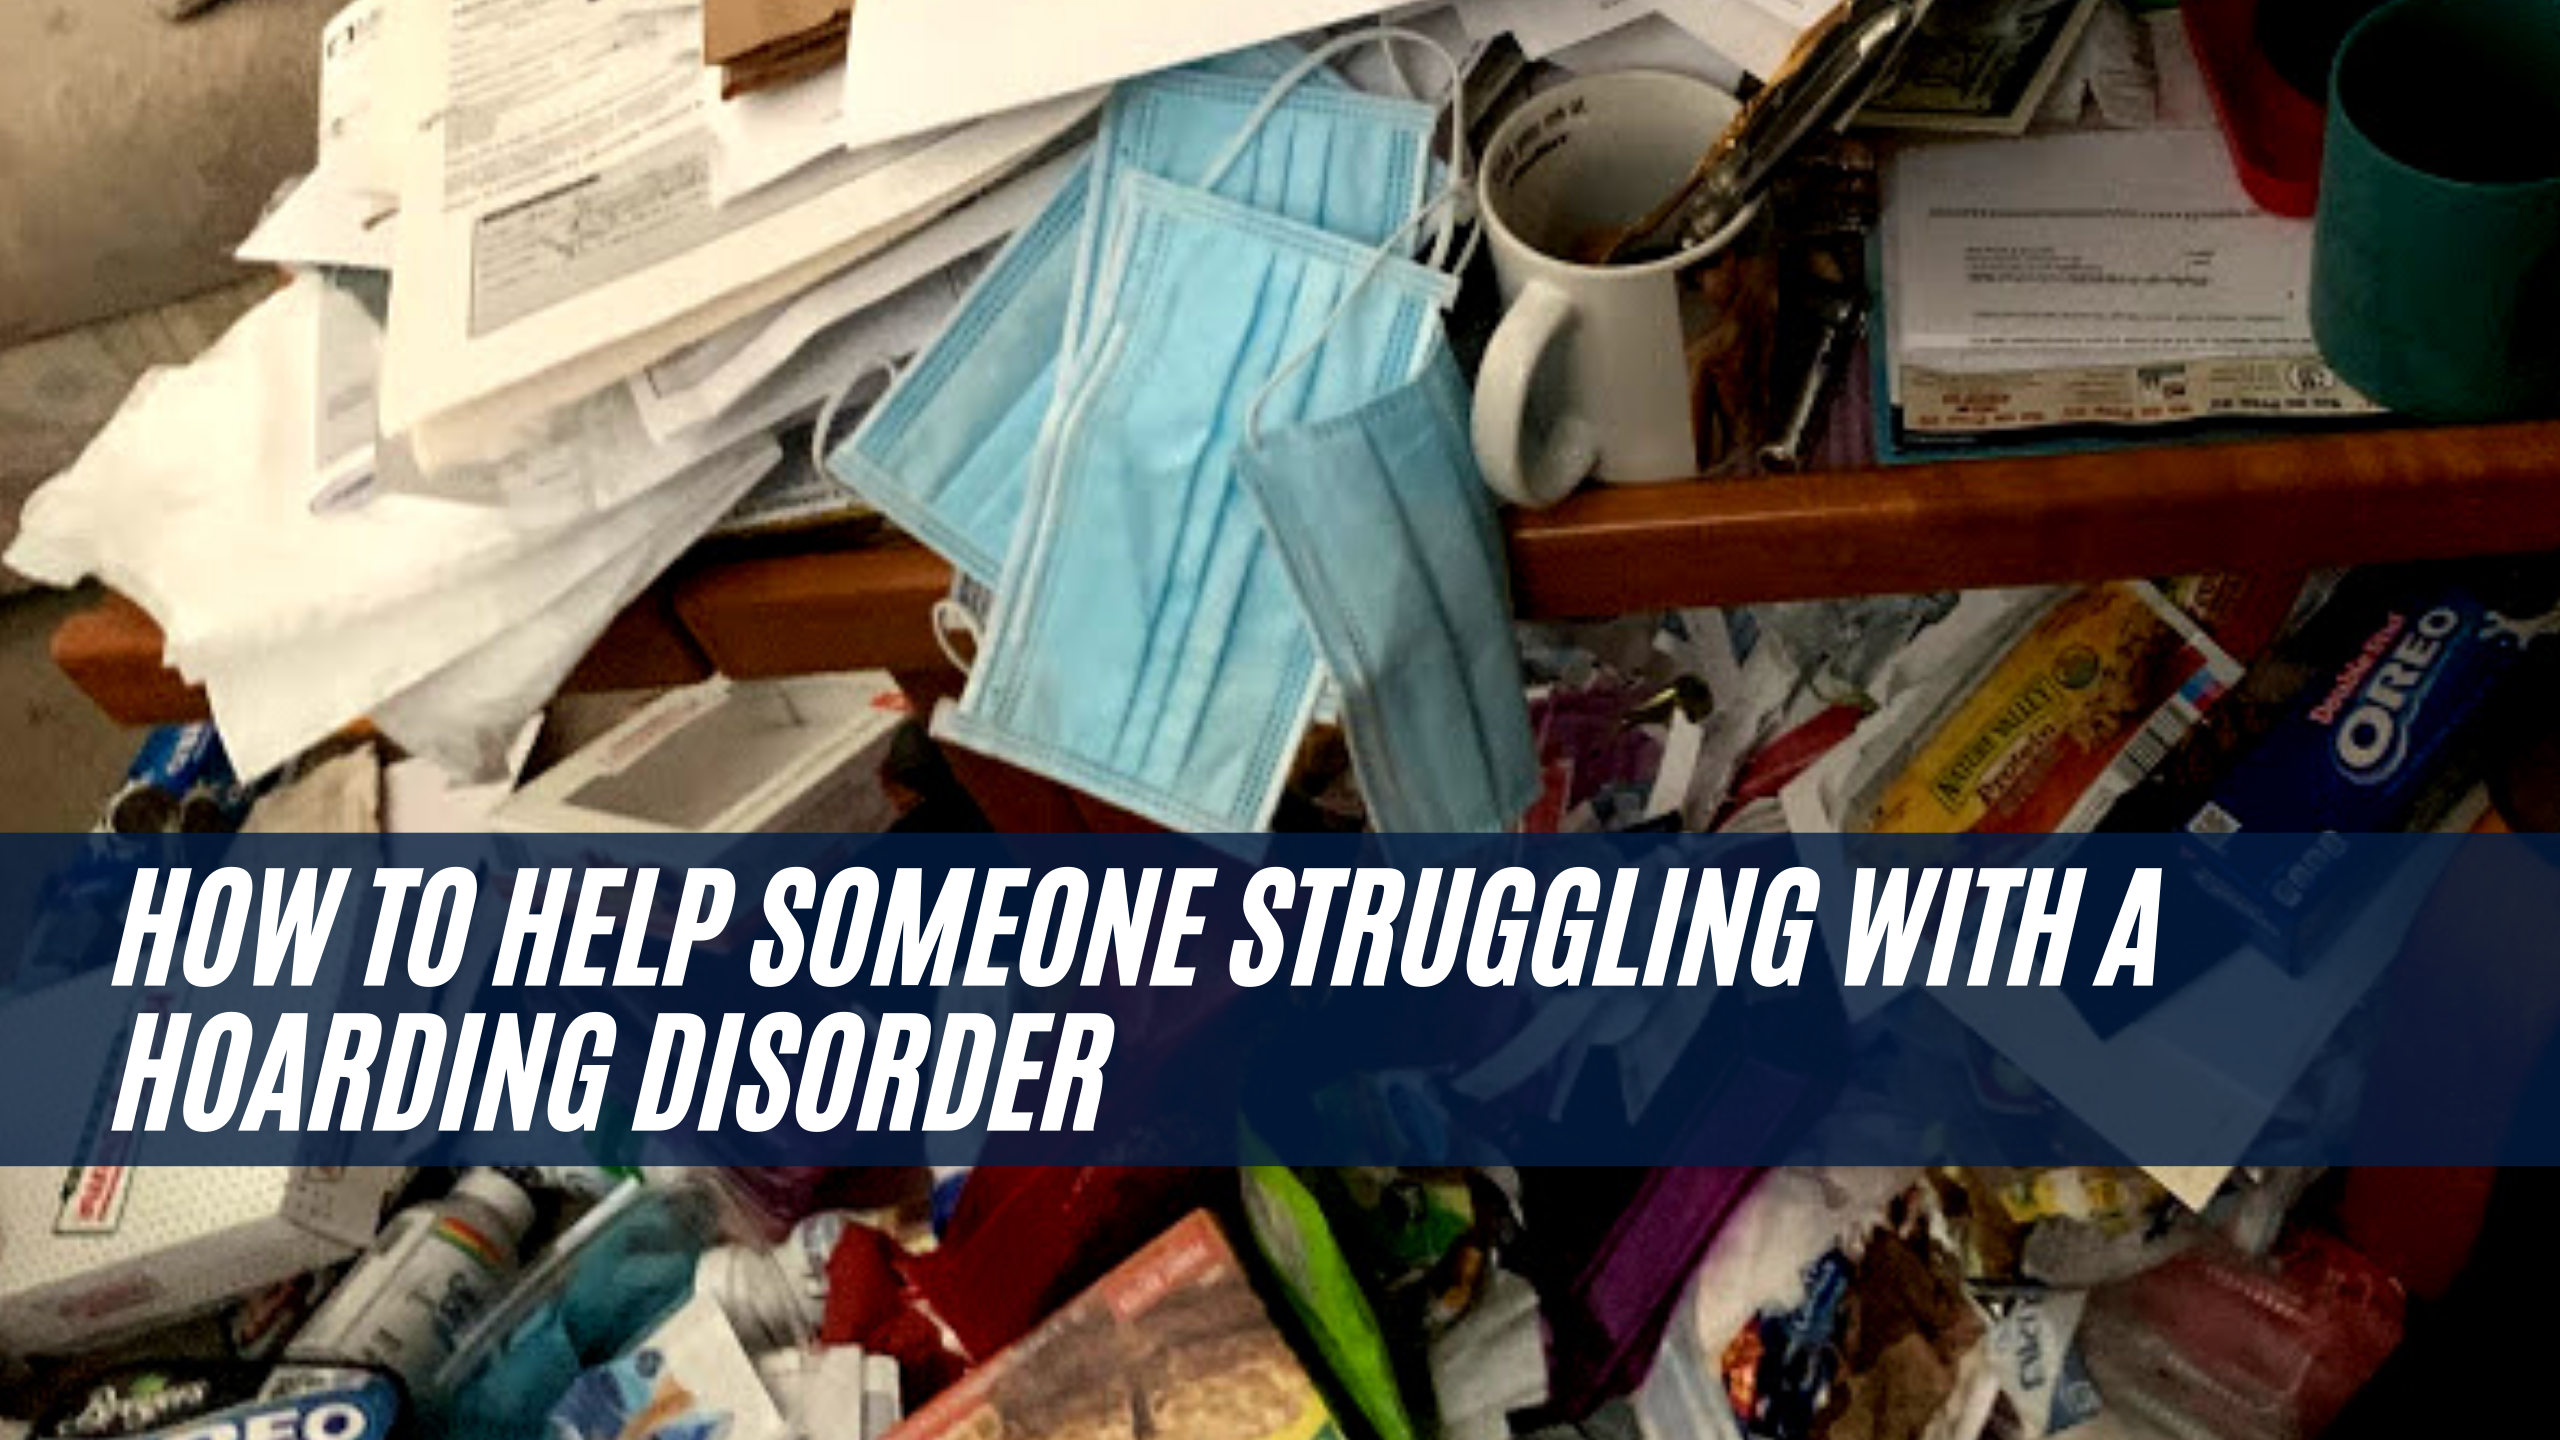 How to Help Someone Struggling with a Hoarding Disorder